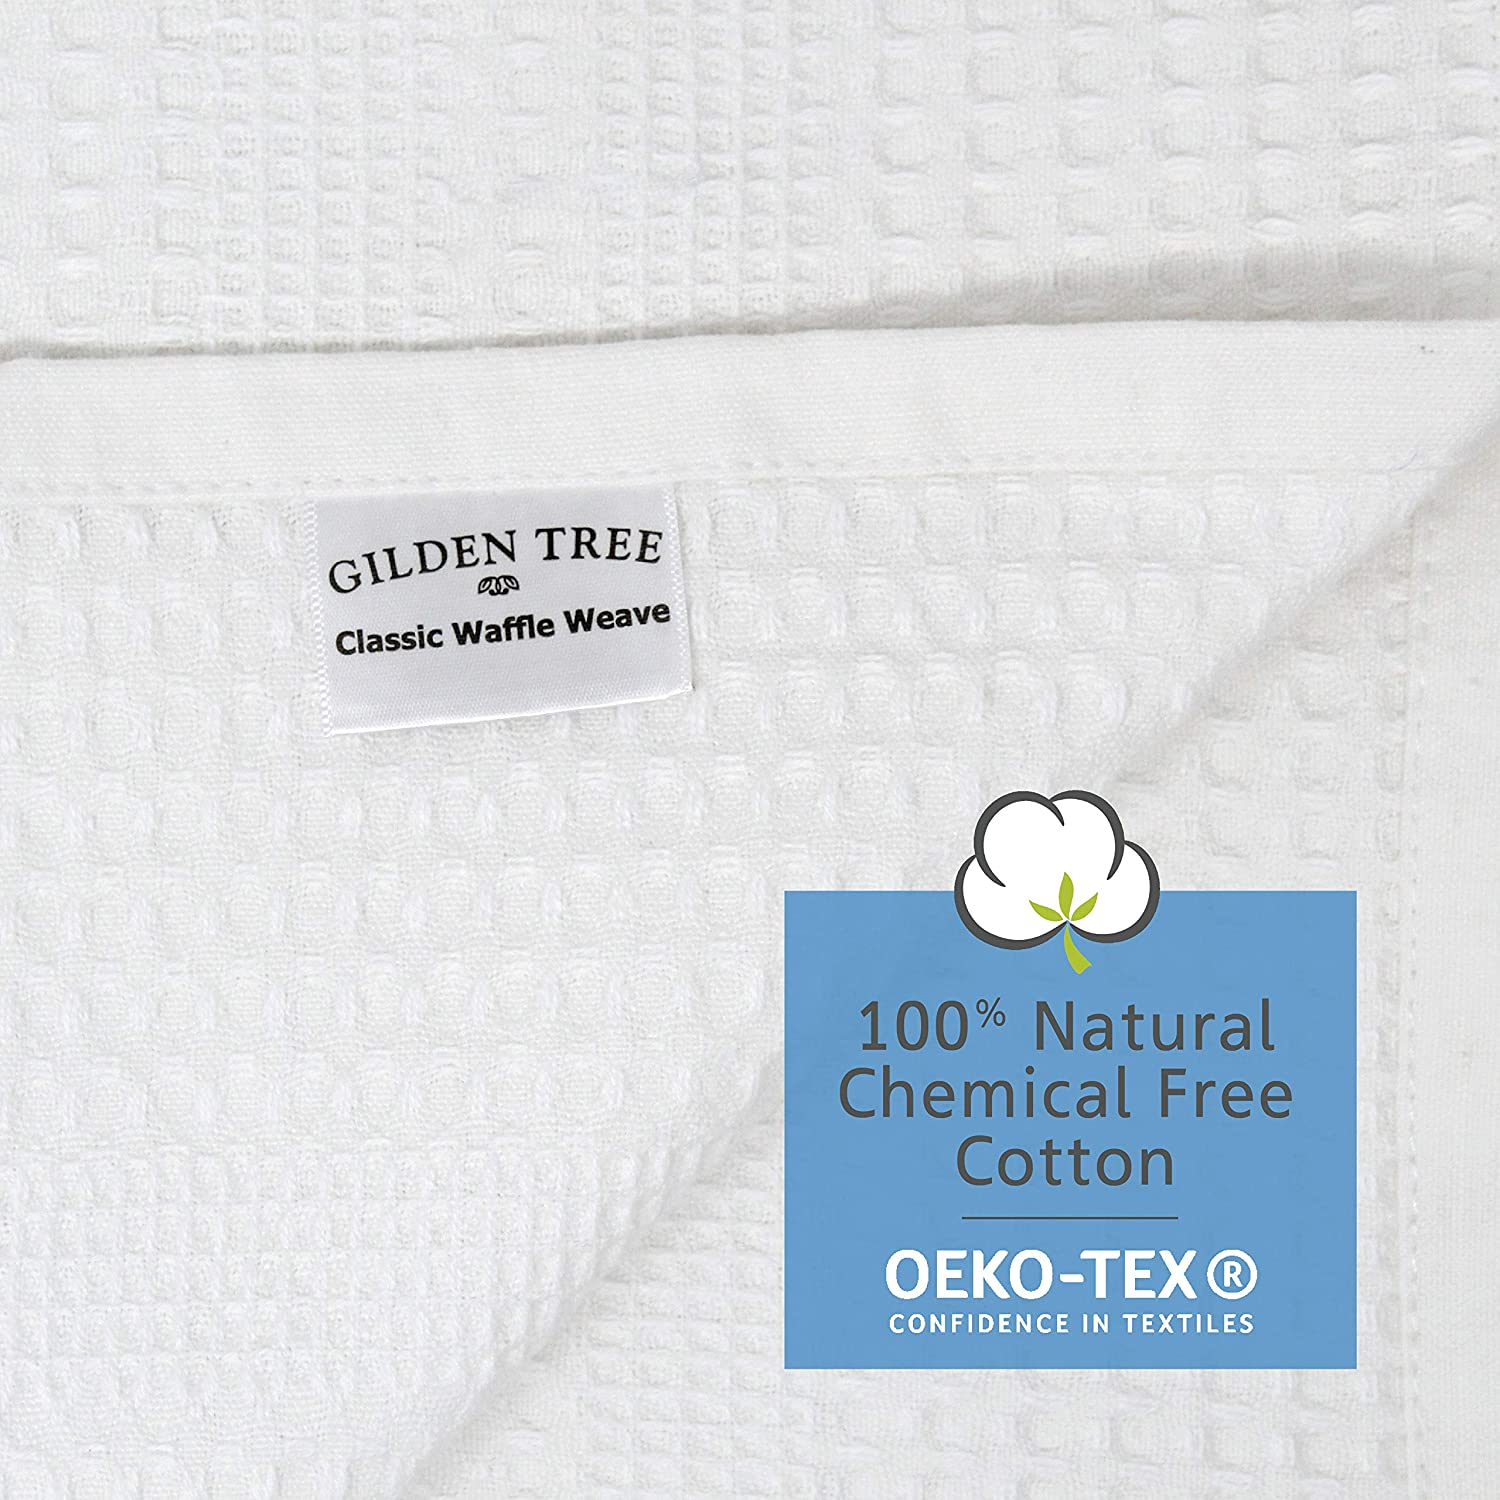 Gilden Tree Premium Bath Towel 100/% Natural Cotton Quick Dry Waffle Weave Lint Free Soft Luxurious Fabric Solid Colors Oversized Thin Cloth Fade Resistant White